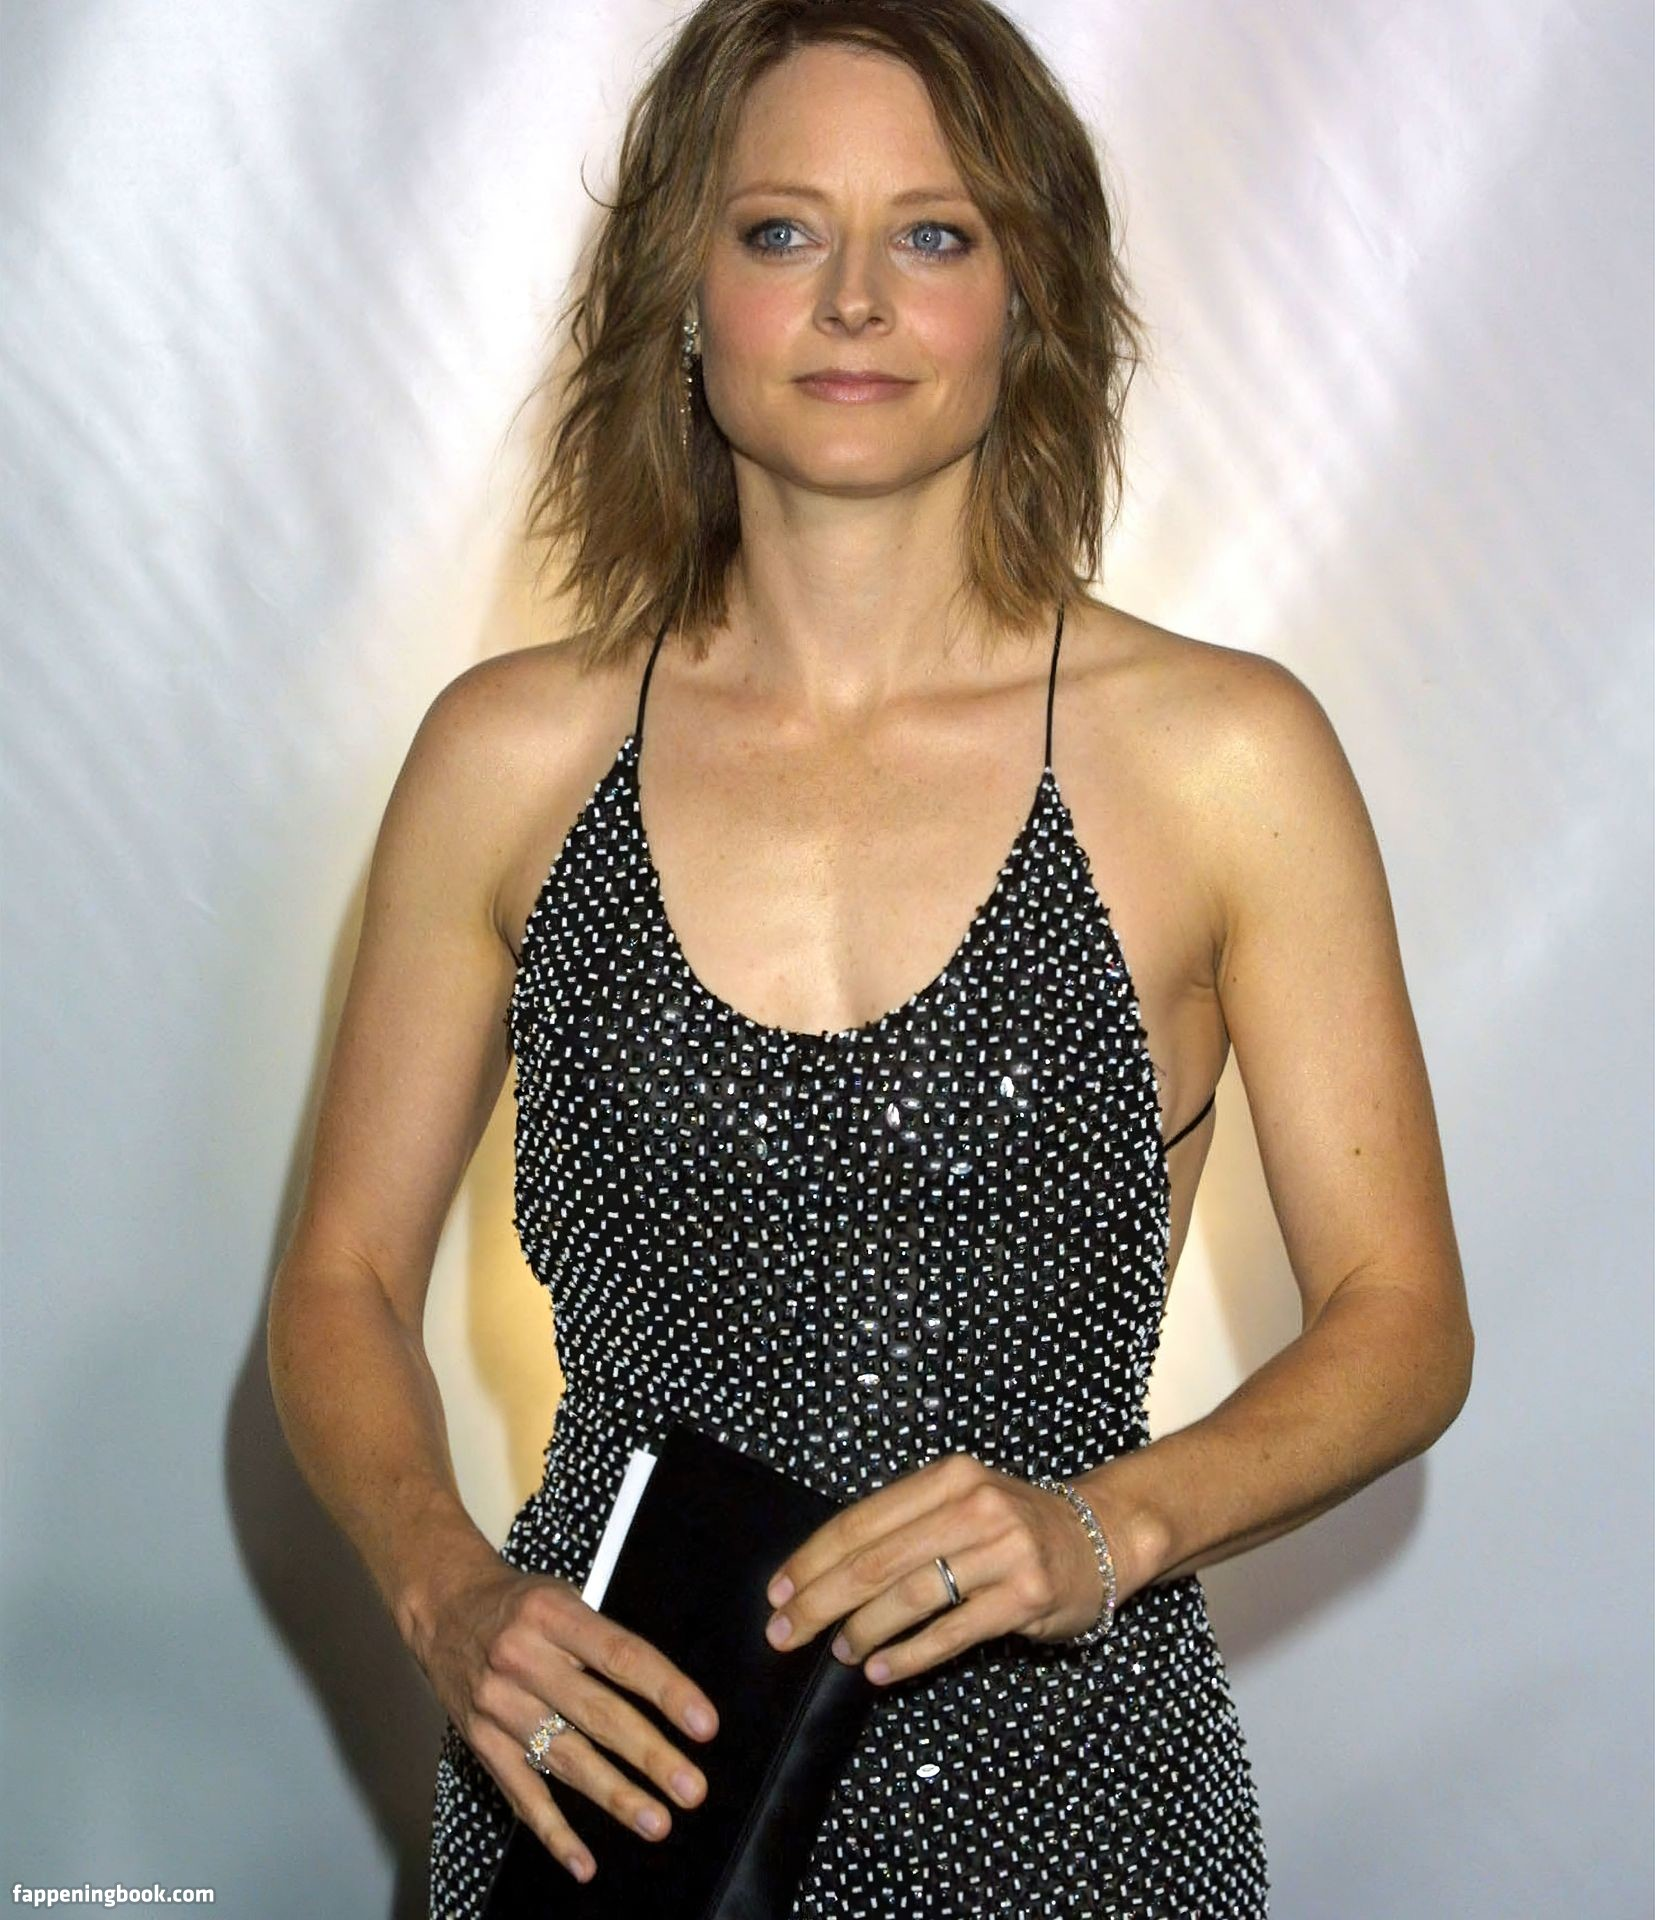 CELEBS NUDE: Jodie Foster